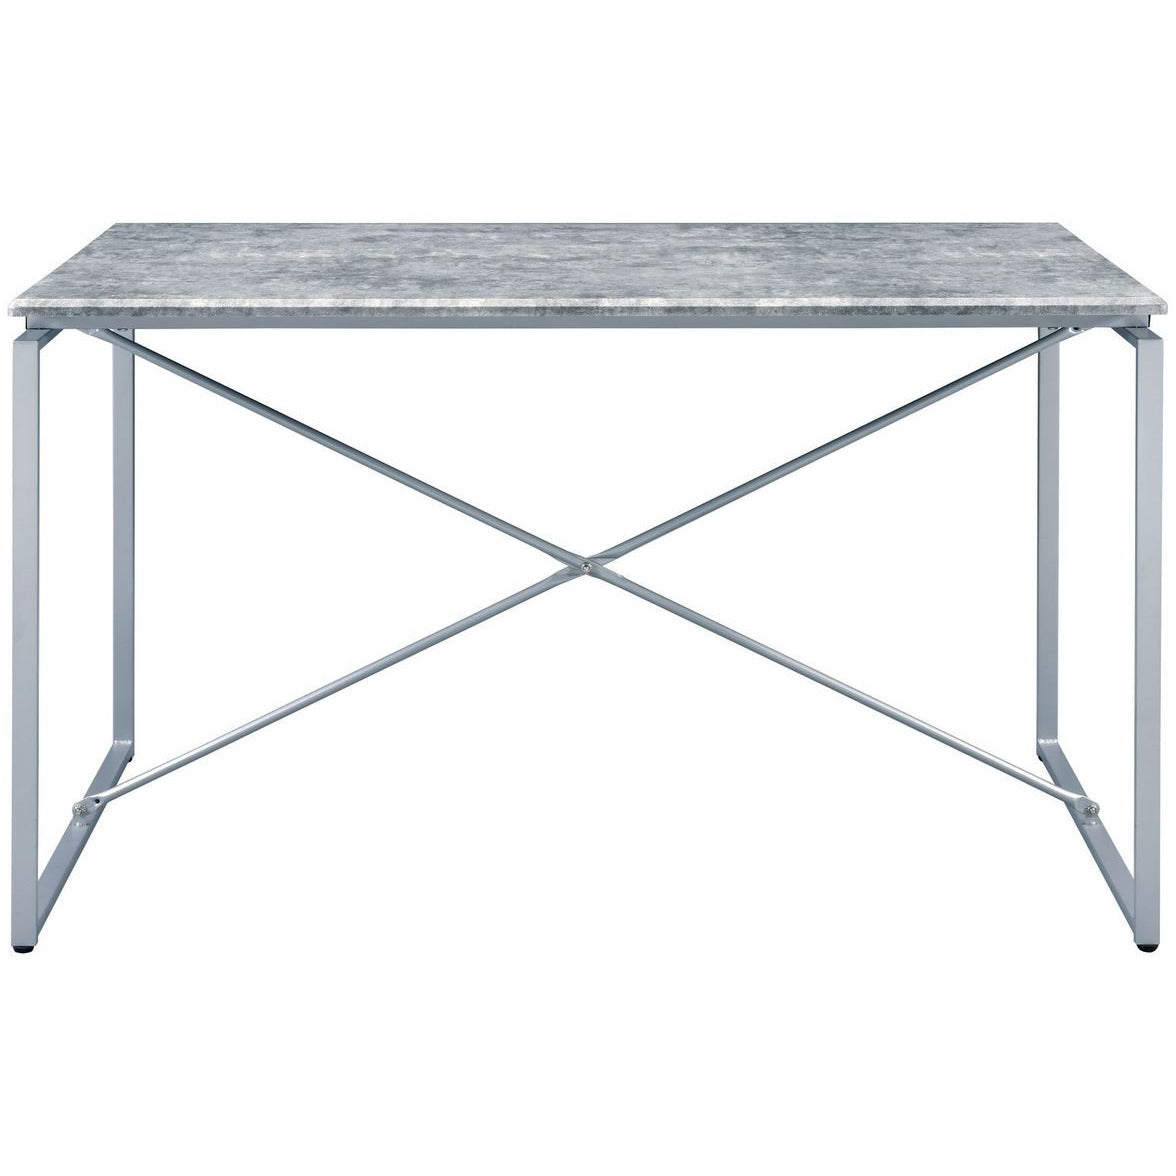 White Smoke Rectangular Sled Dining Table Faux Concrete & Silver BH72905